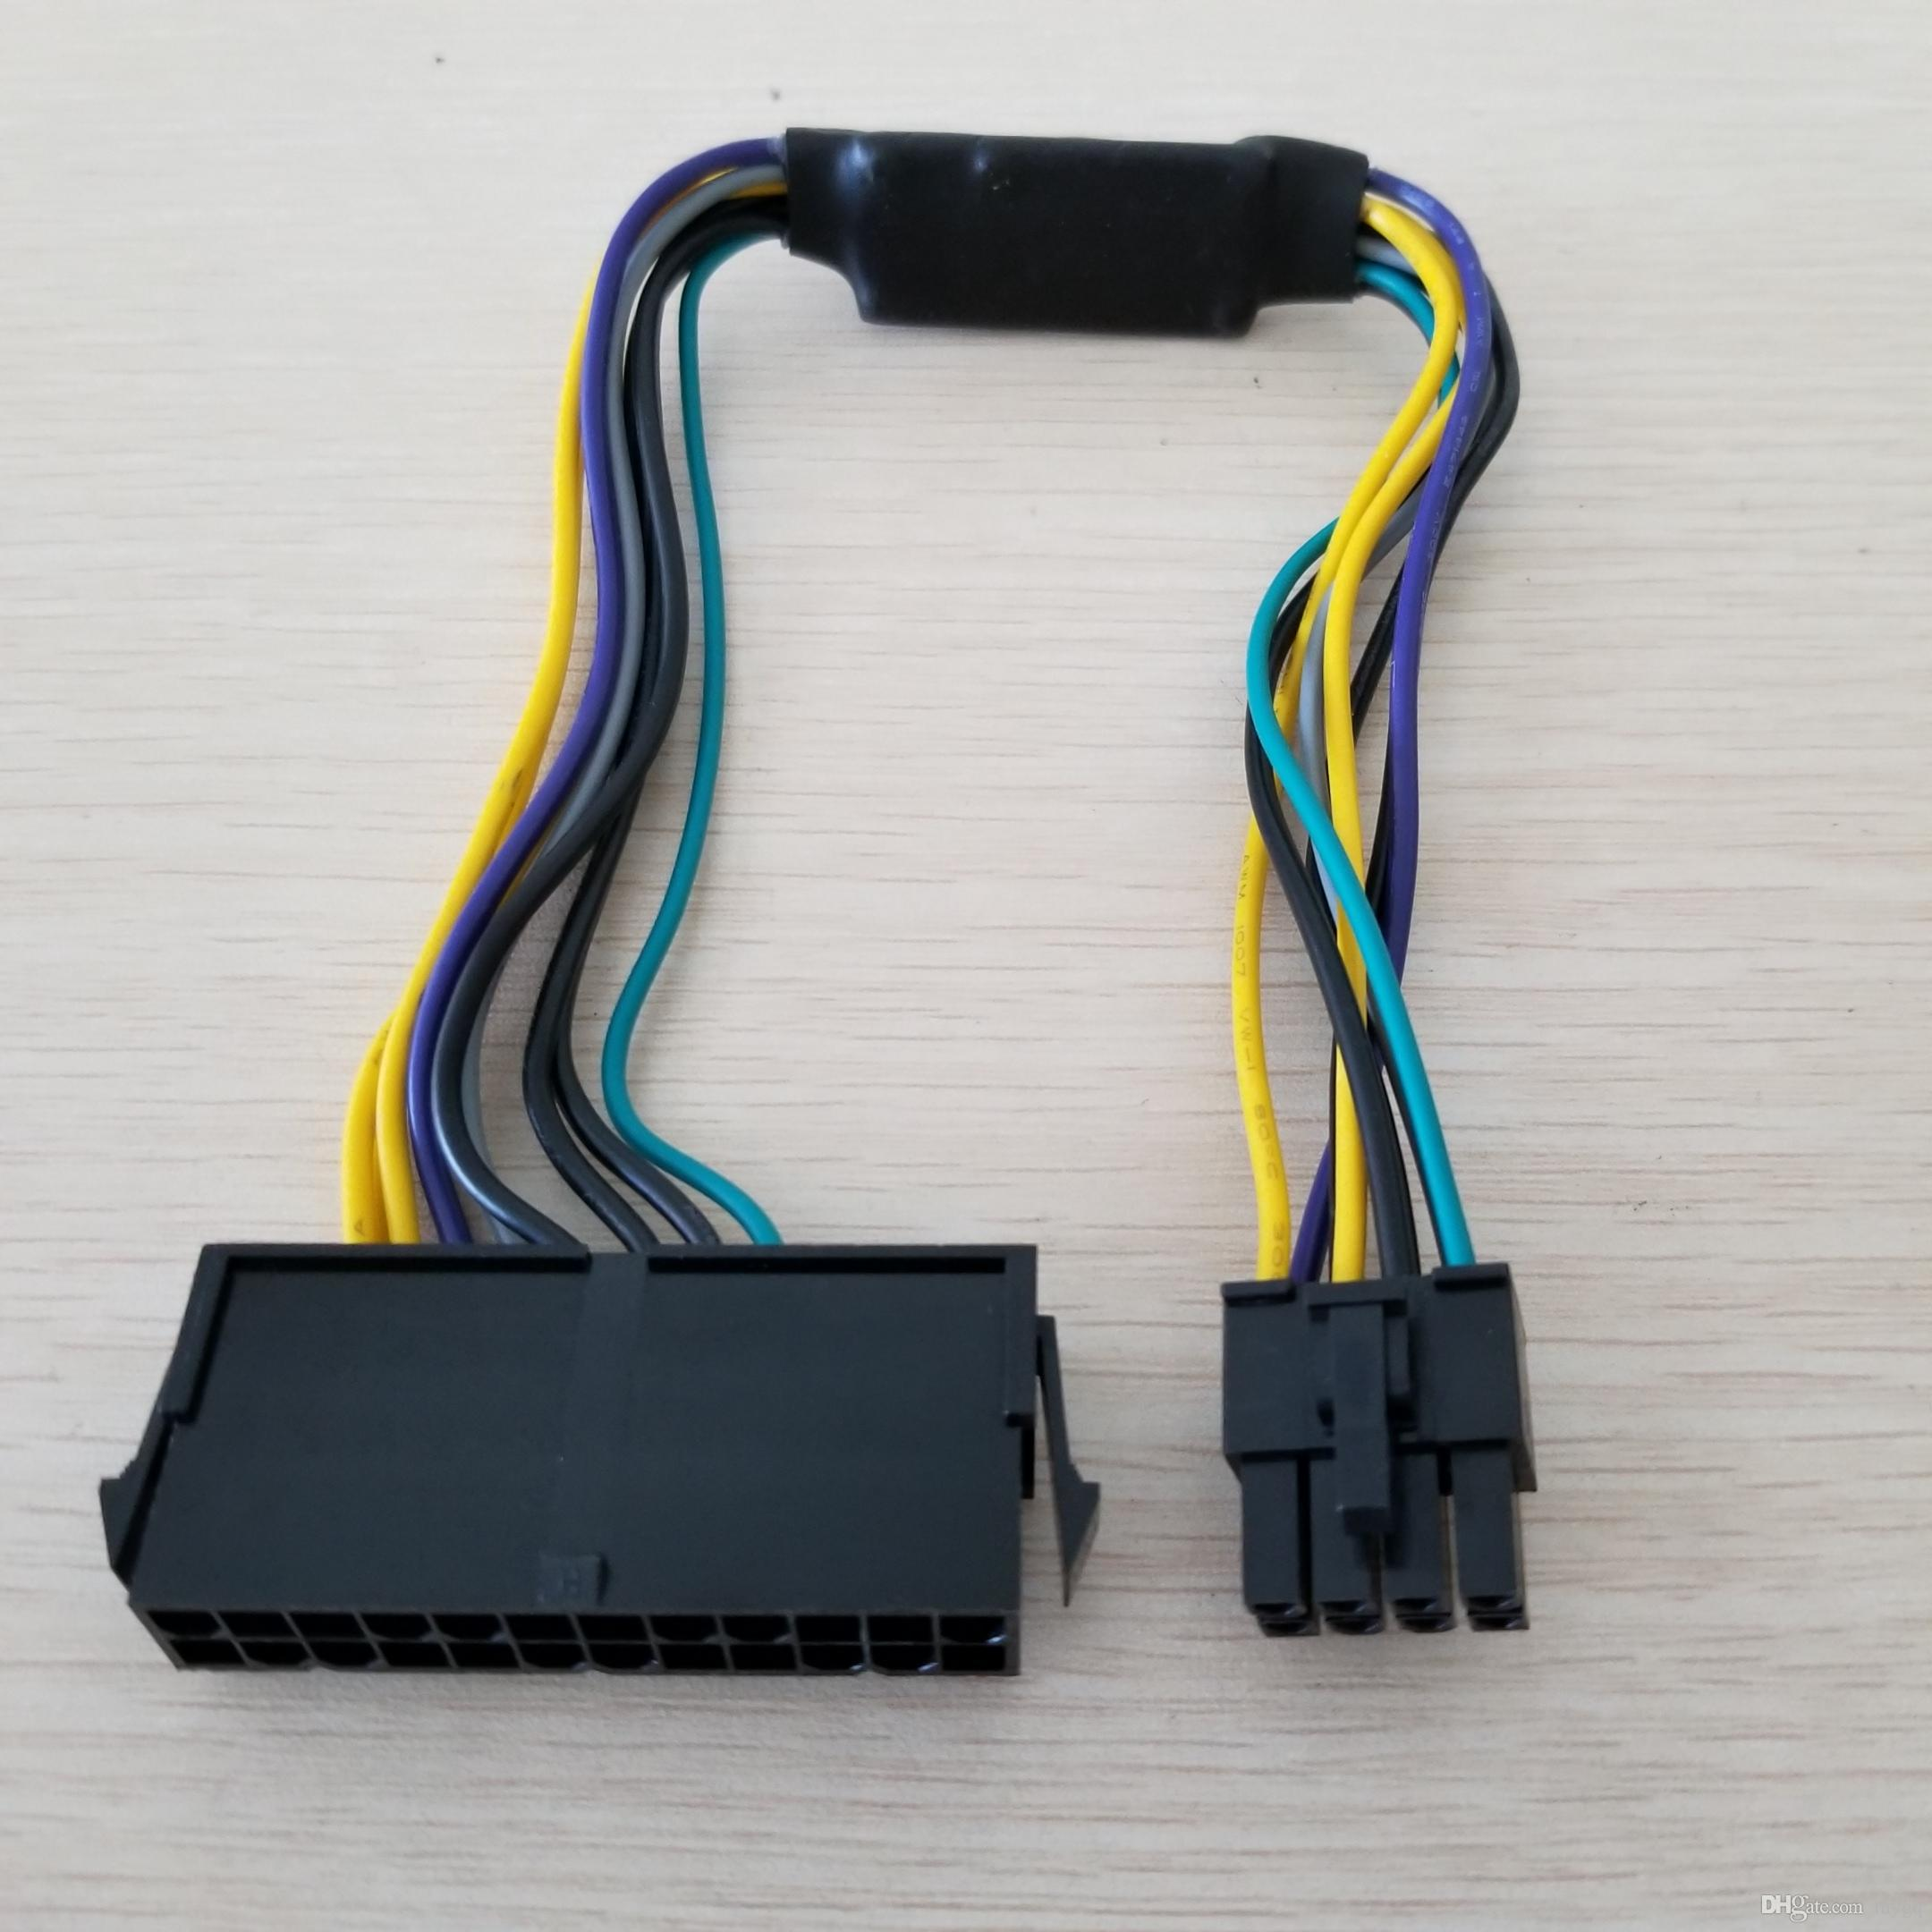 Dell 24 Pin Power Supply Wiring Diagram Electrical Atx 24pin Female To Motherboard 8pin Male For Optiplex 3020 Plug